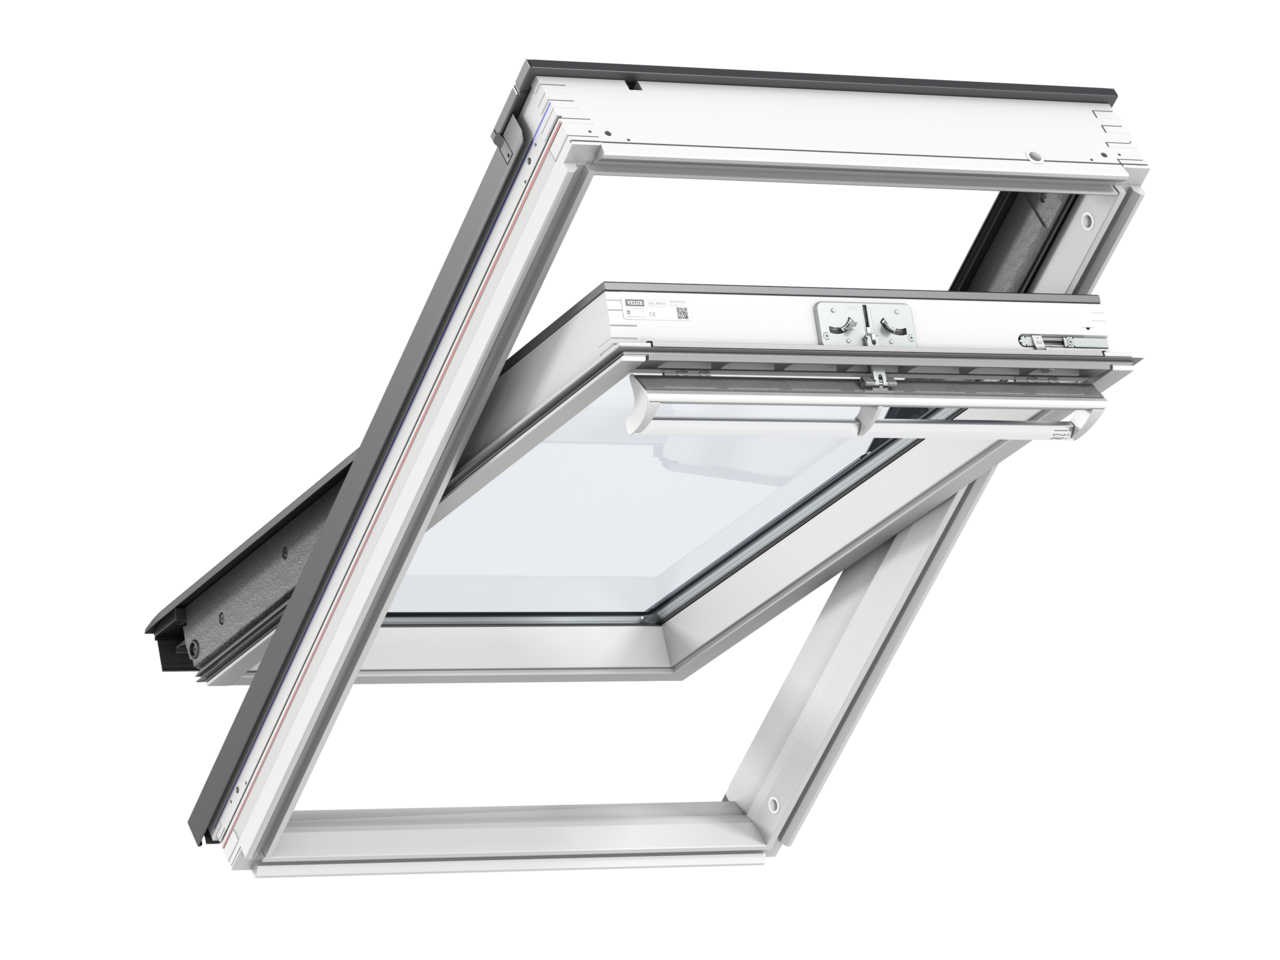 Velux GGL PK08 940 x 1400mm Centre Pivot 62Pane Roof Window - White Painted